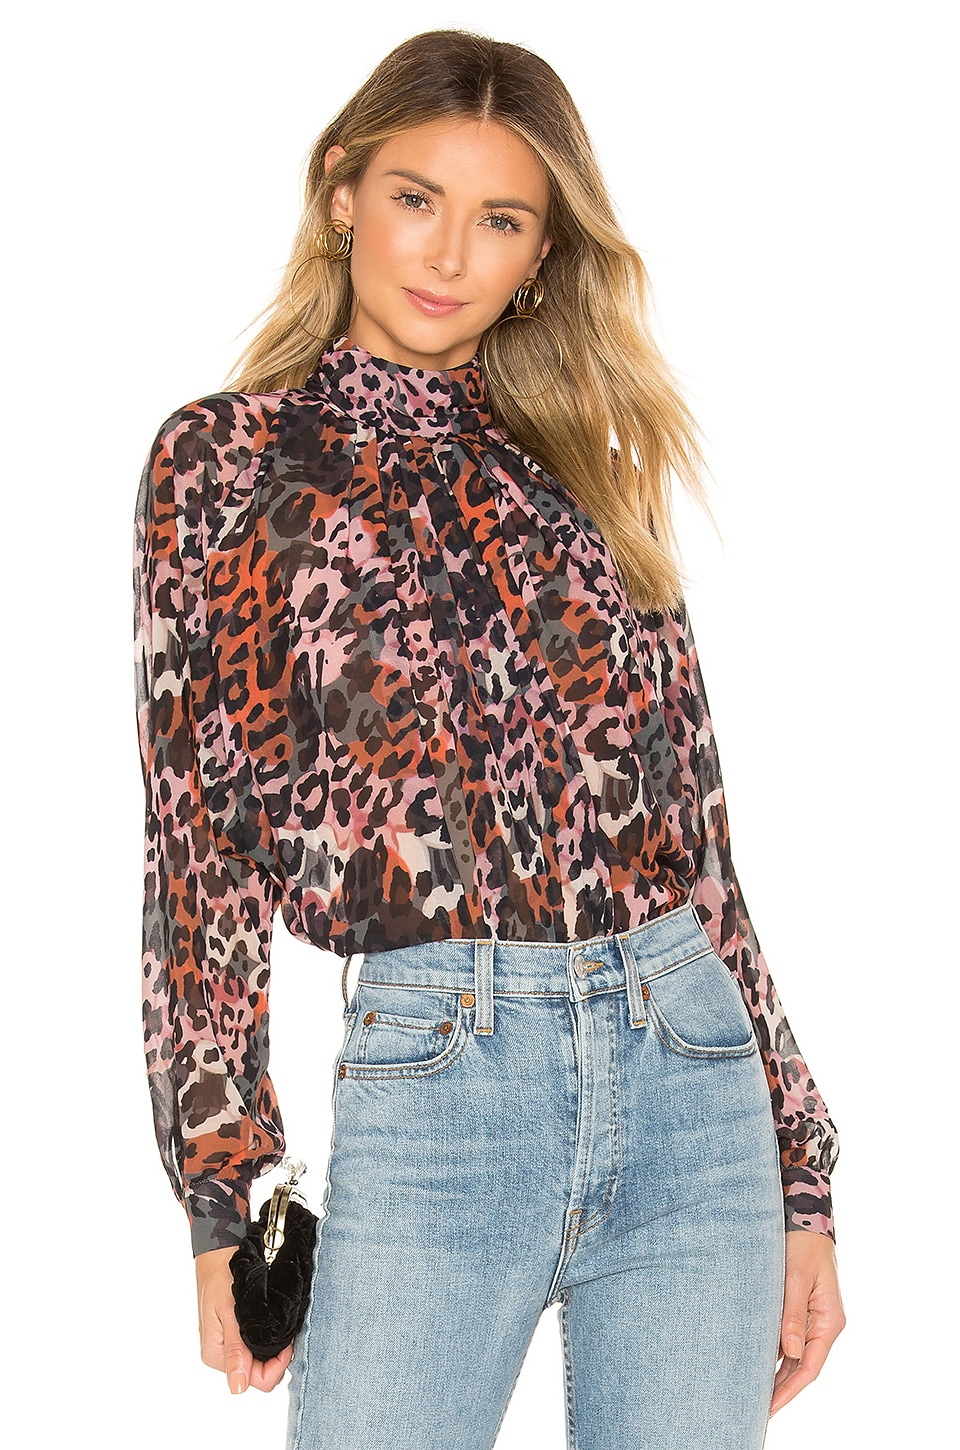 House of Harlow 1960 X REVOLVE Dalys Blouse in Leopard Multi